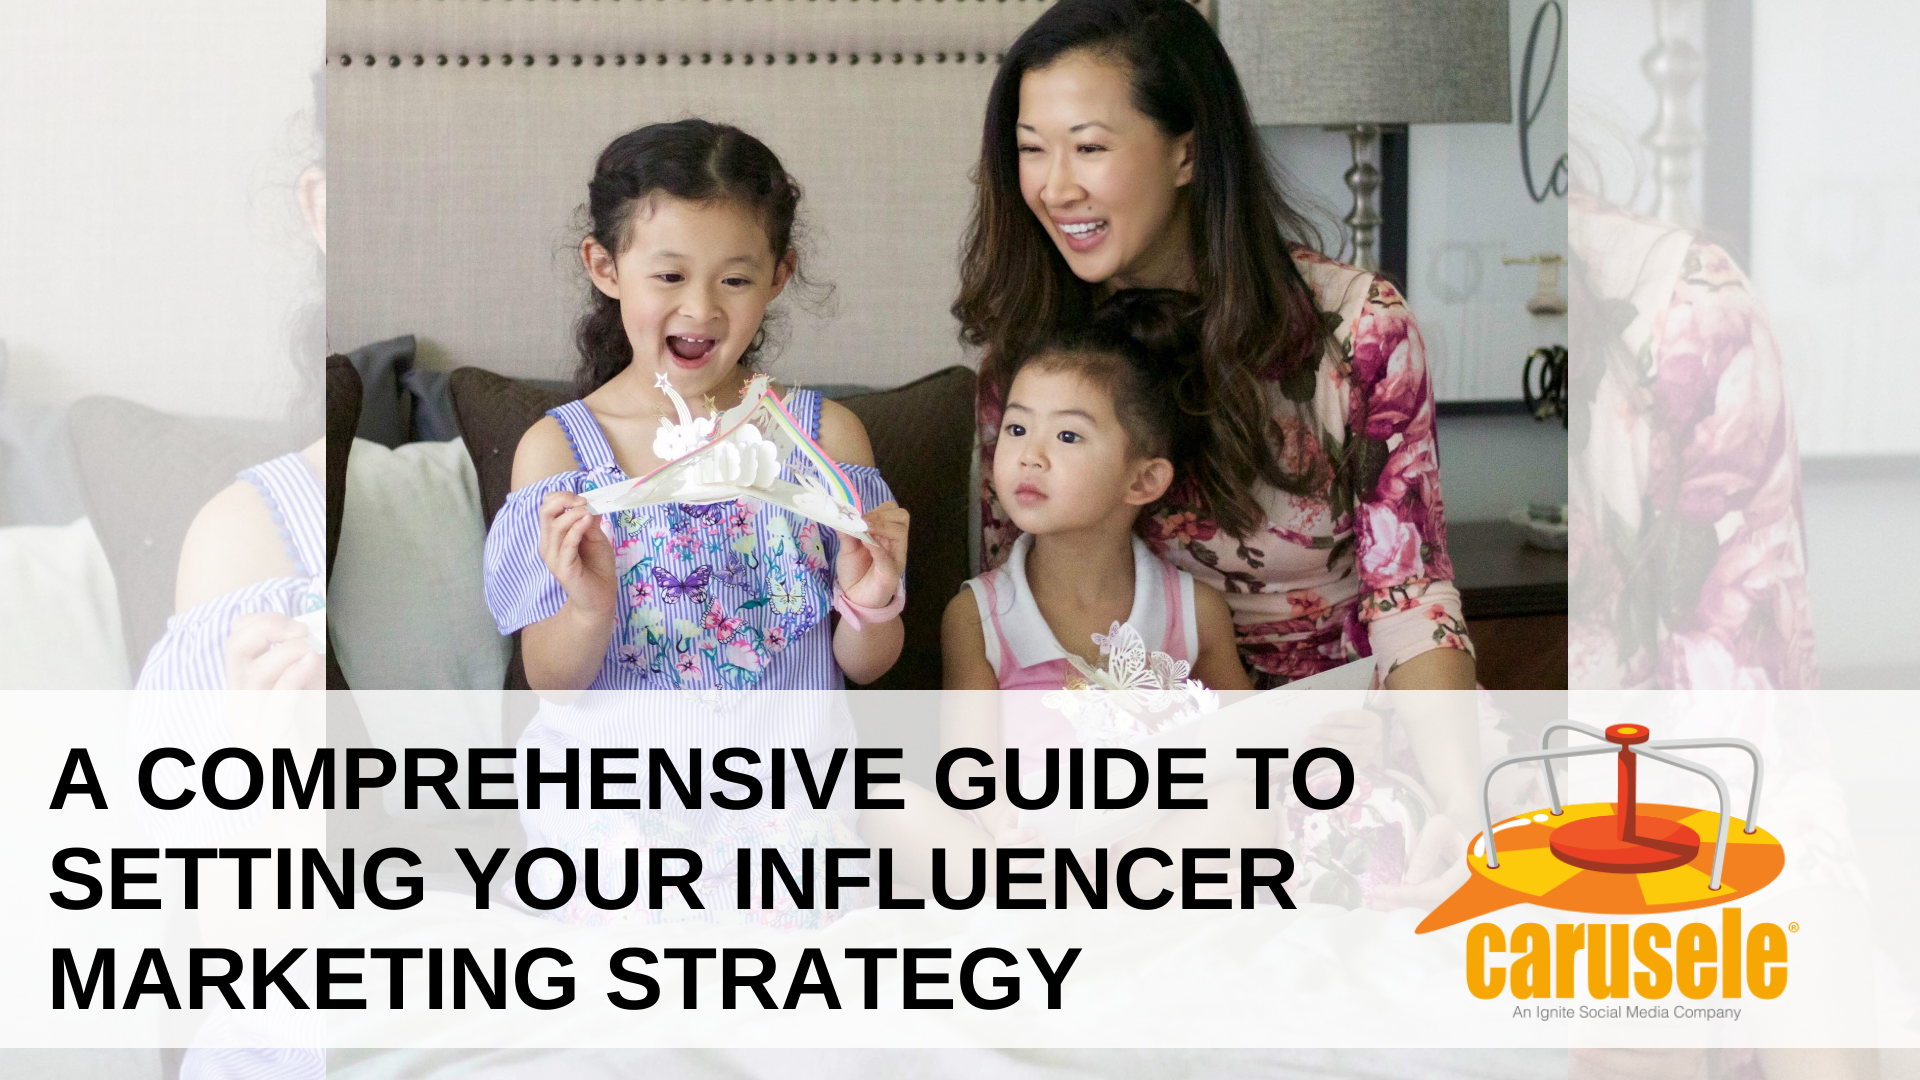 A Comprehensive Guide to Setting Your Influencer Marketing Strategy